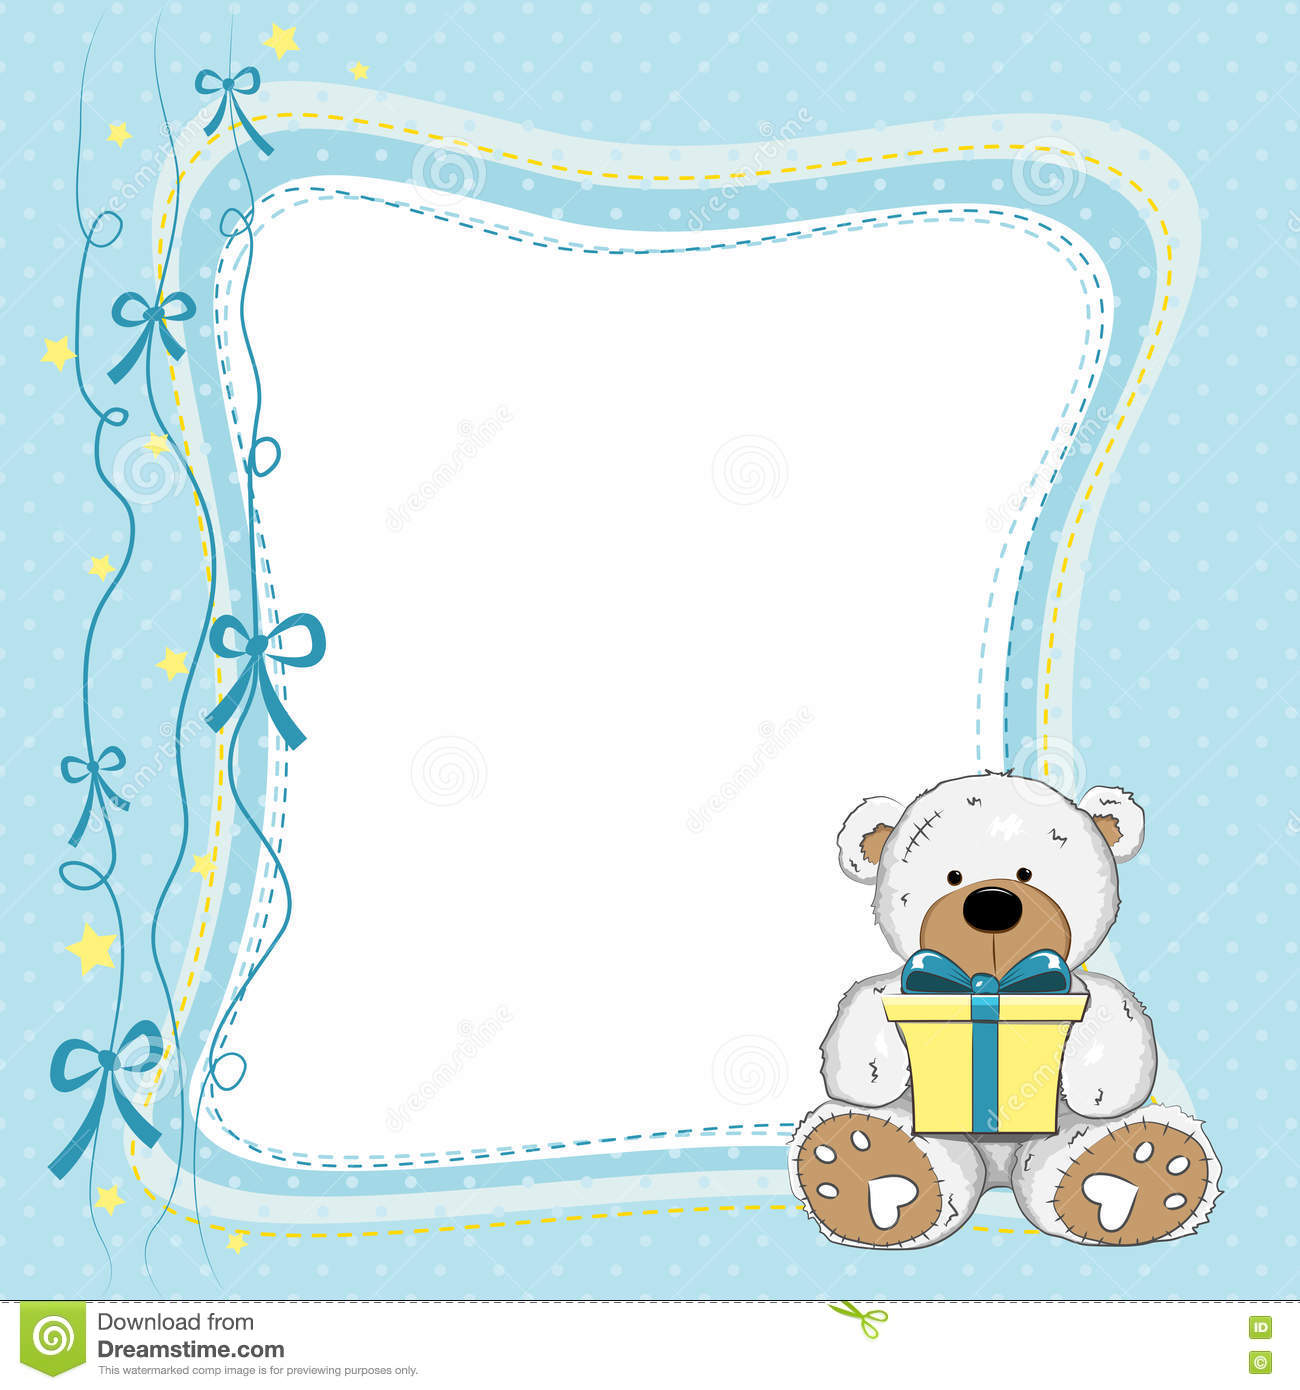 First Birthday Invitation For Baby Boy is luxury invitations example